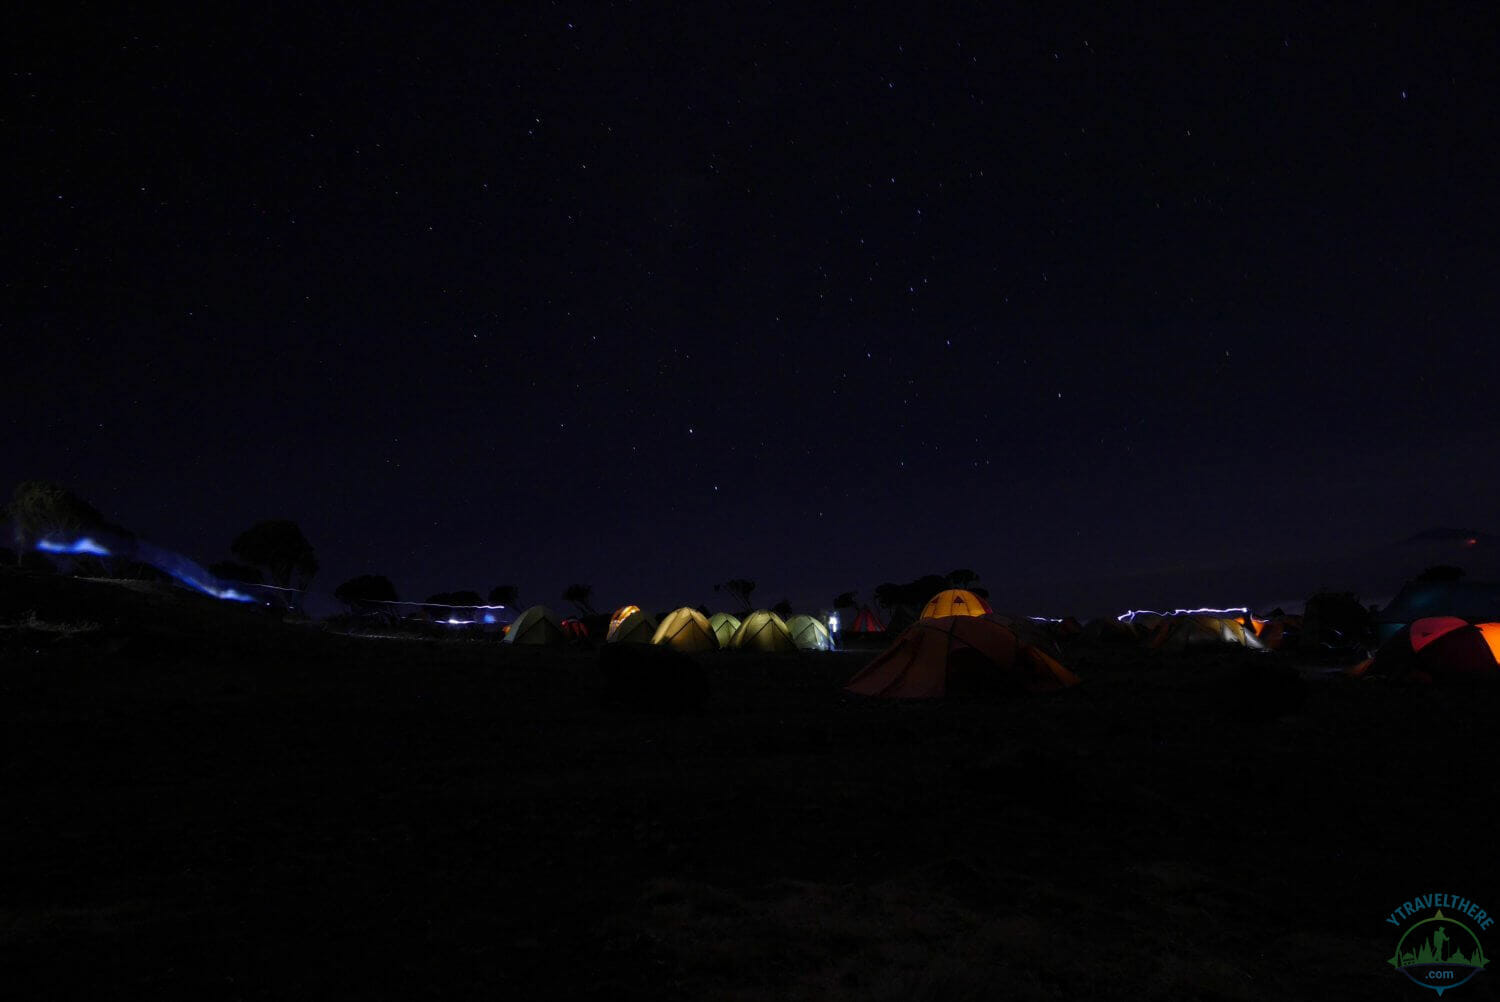 tents lit up Kilimanjaro, Shira 2 camp Kilimanjaro night